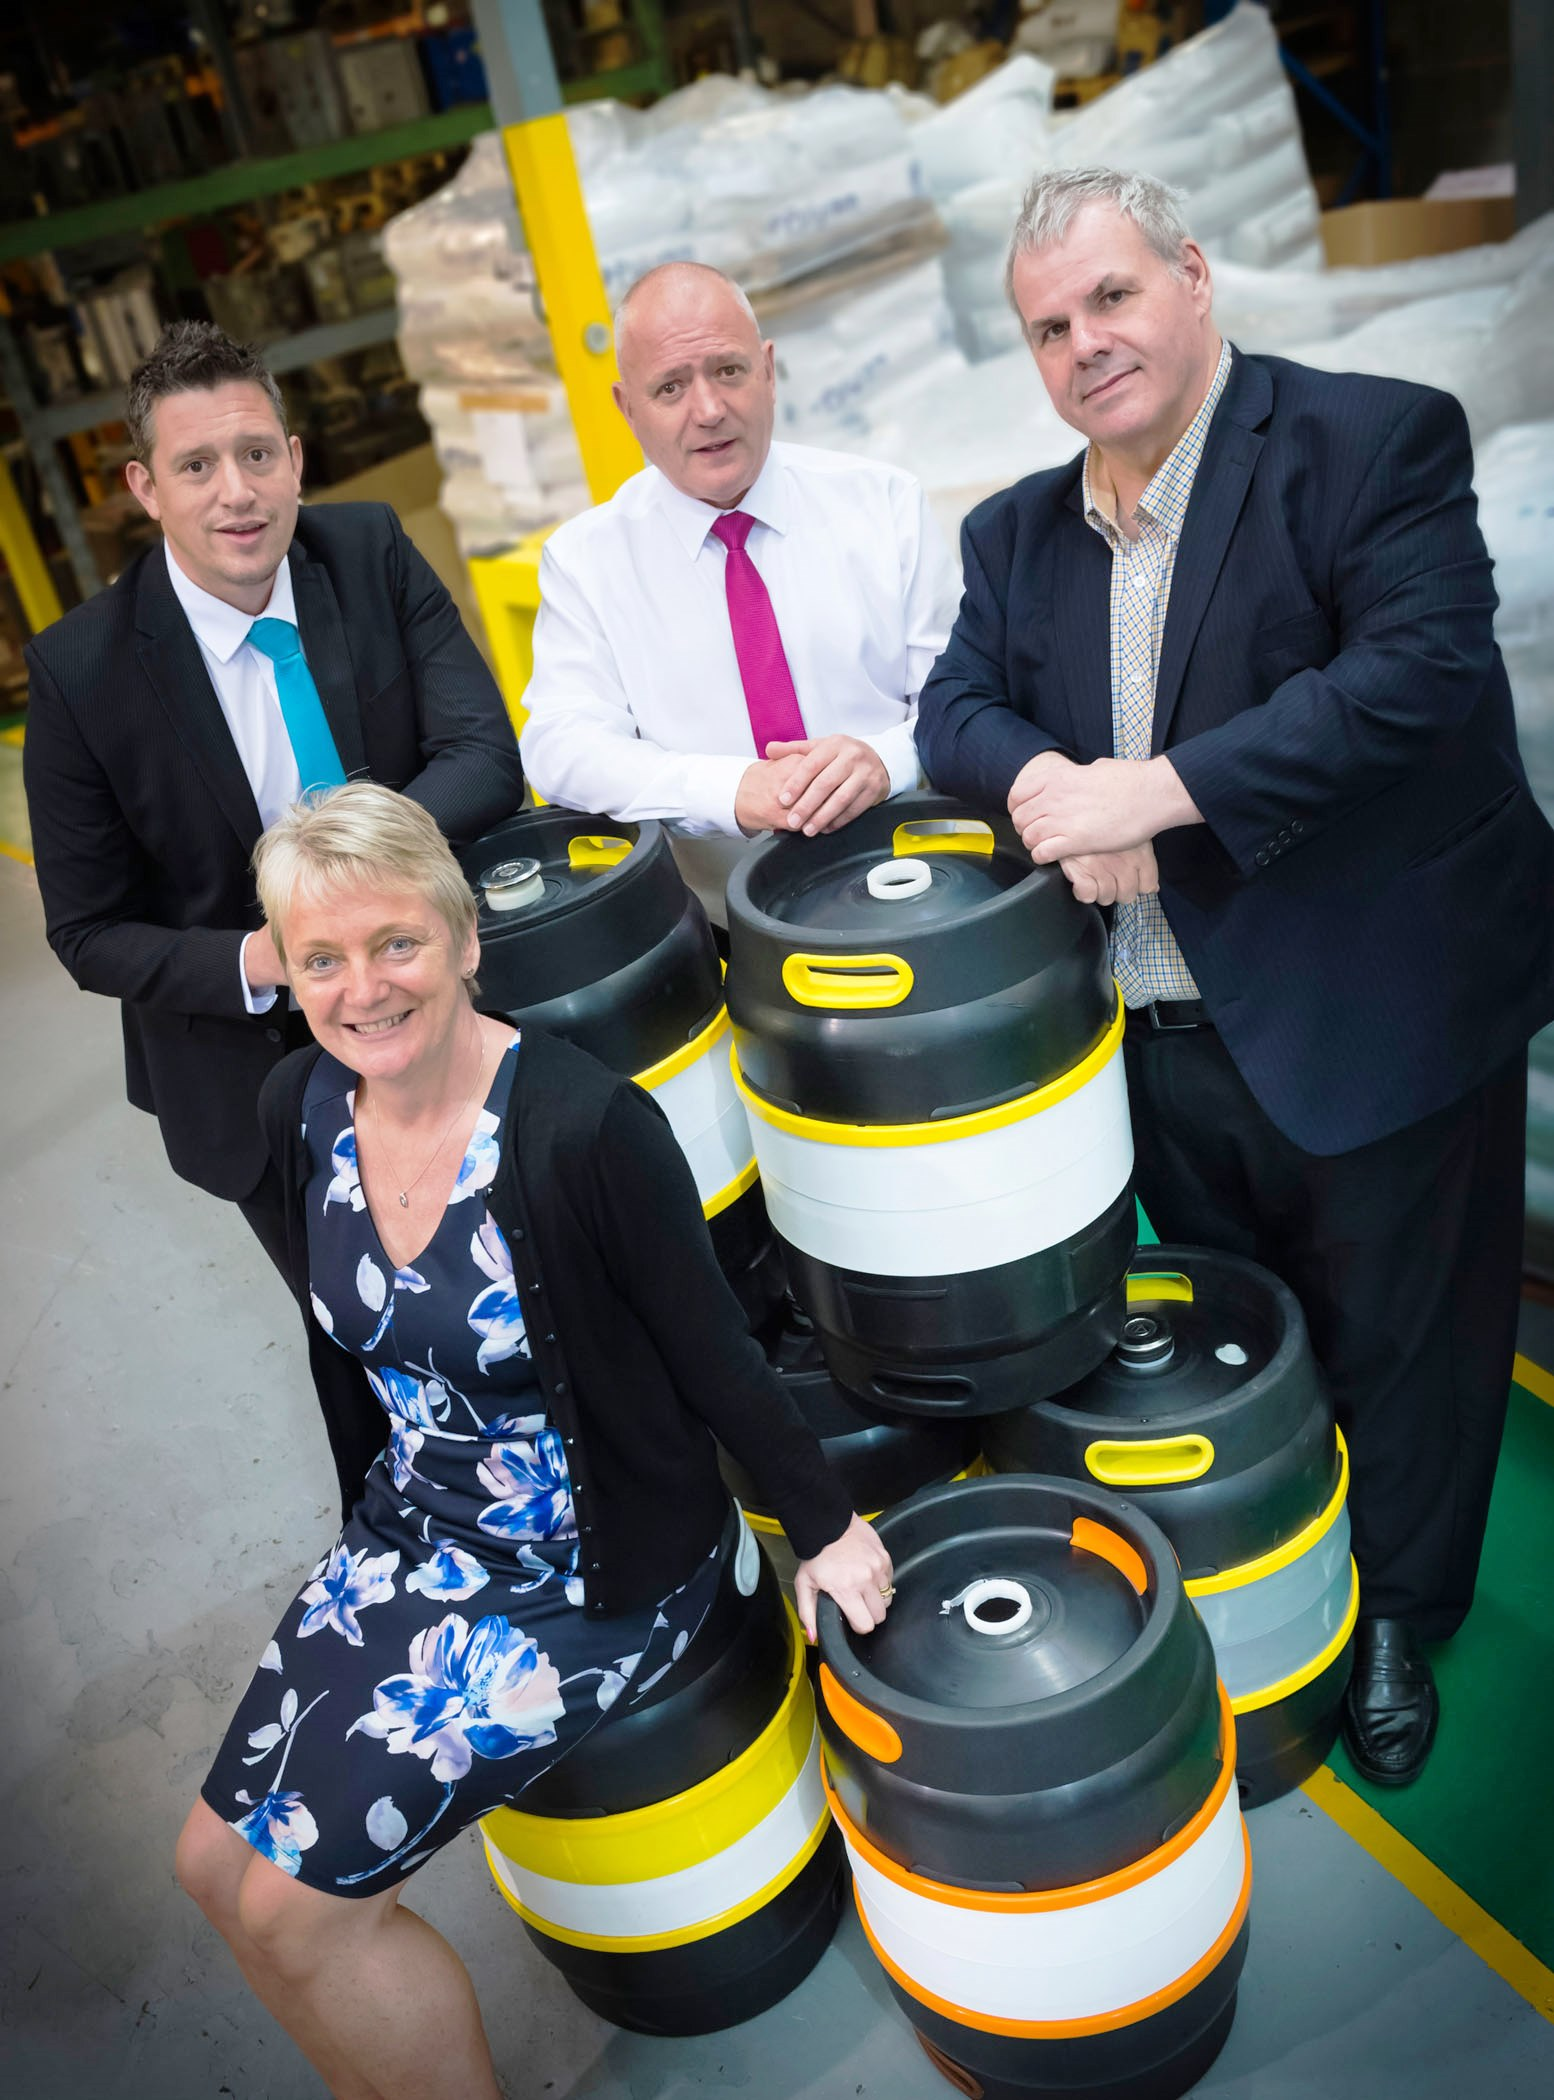 Image: Cheers to that! Rochdale company invents first ever reusable plastic beer keg